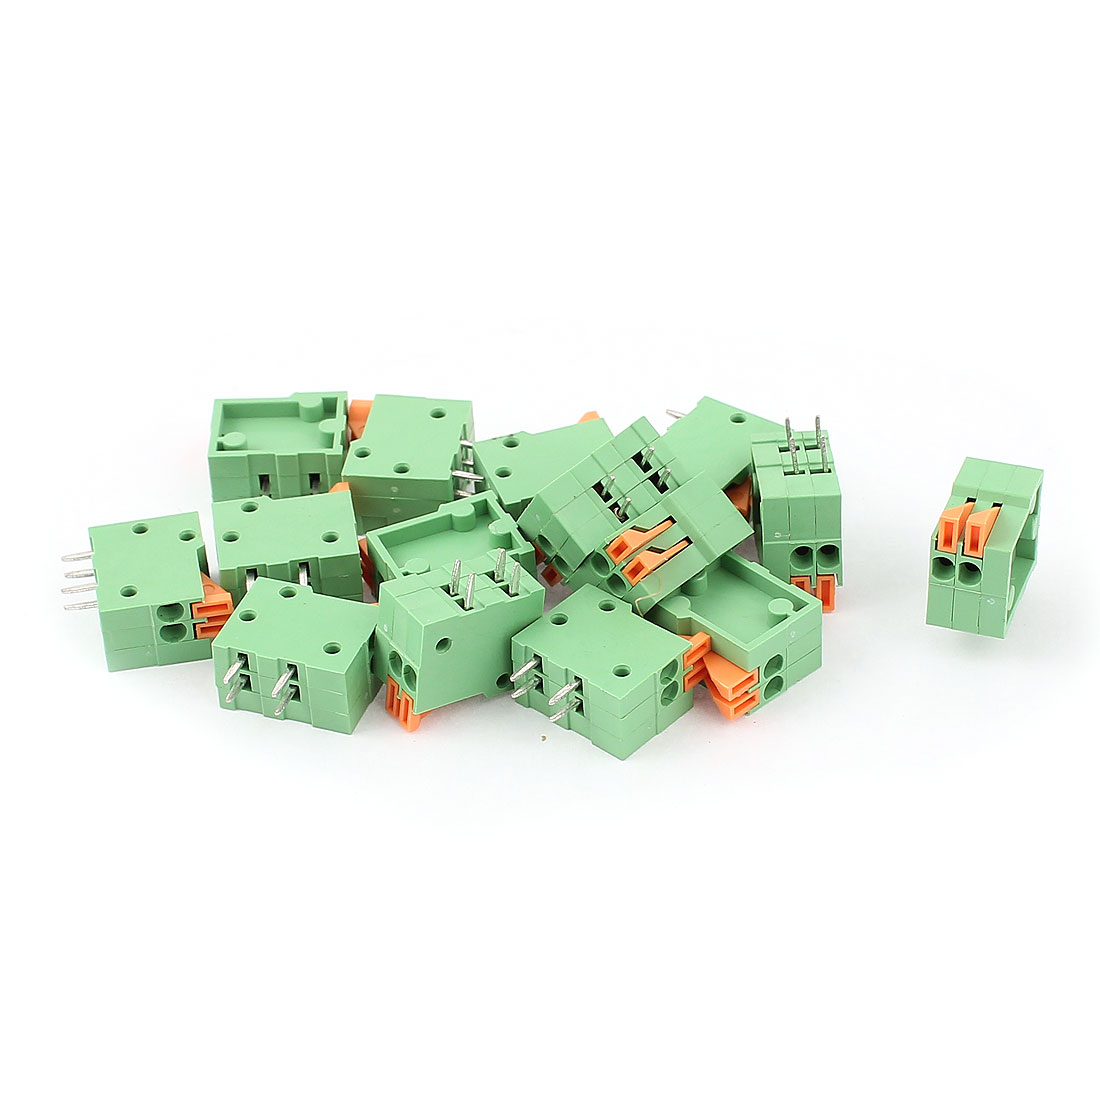 15Pcs KF141R 2Position 2.54mm Pitch 4 Spring Terminal Blocks Connectors 150V 2A